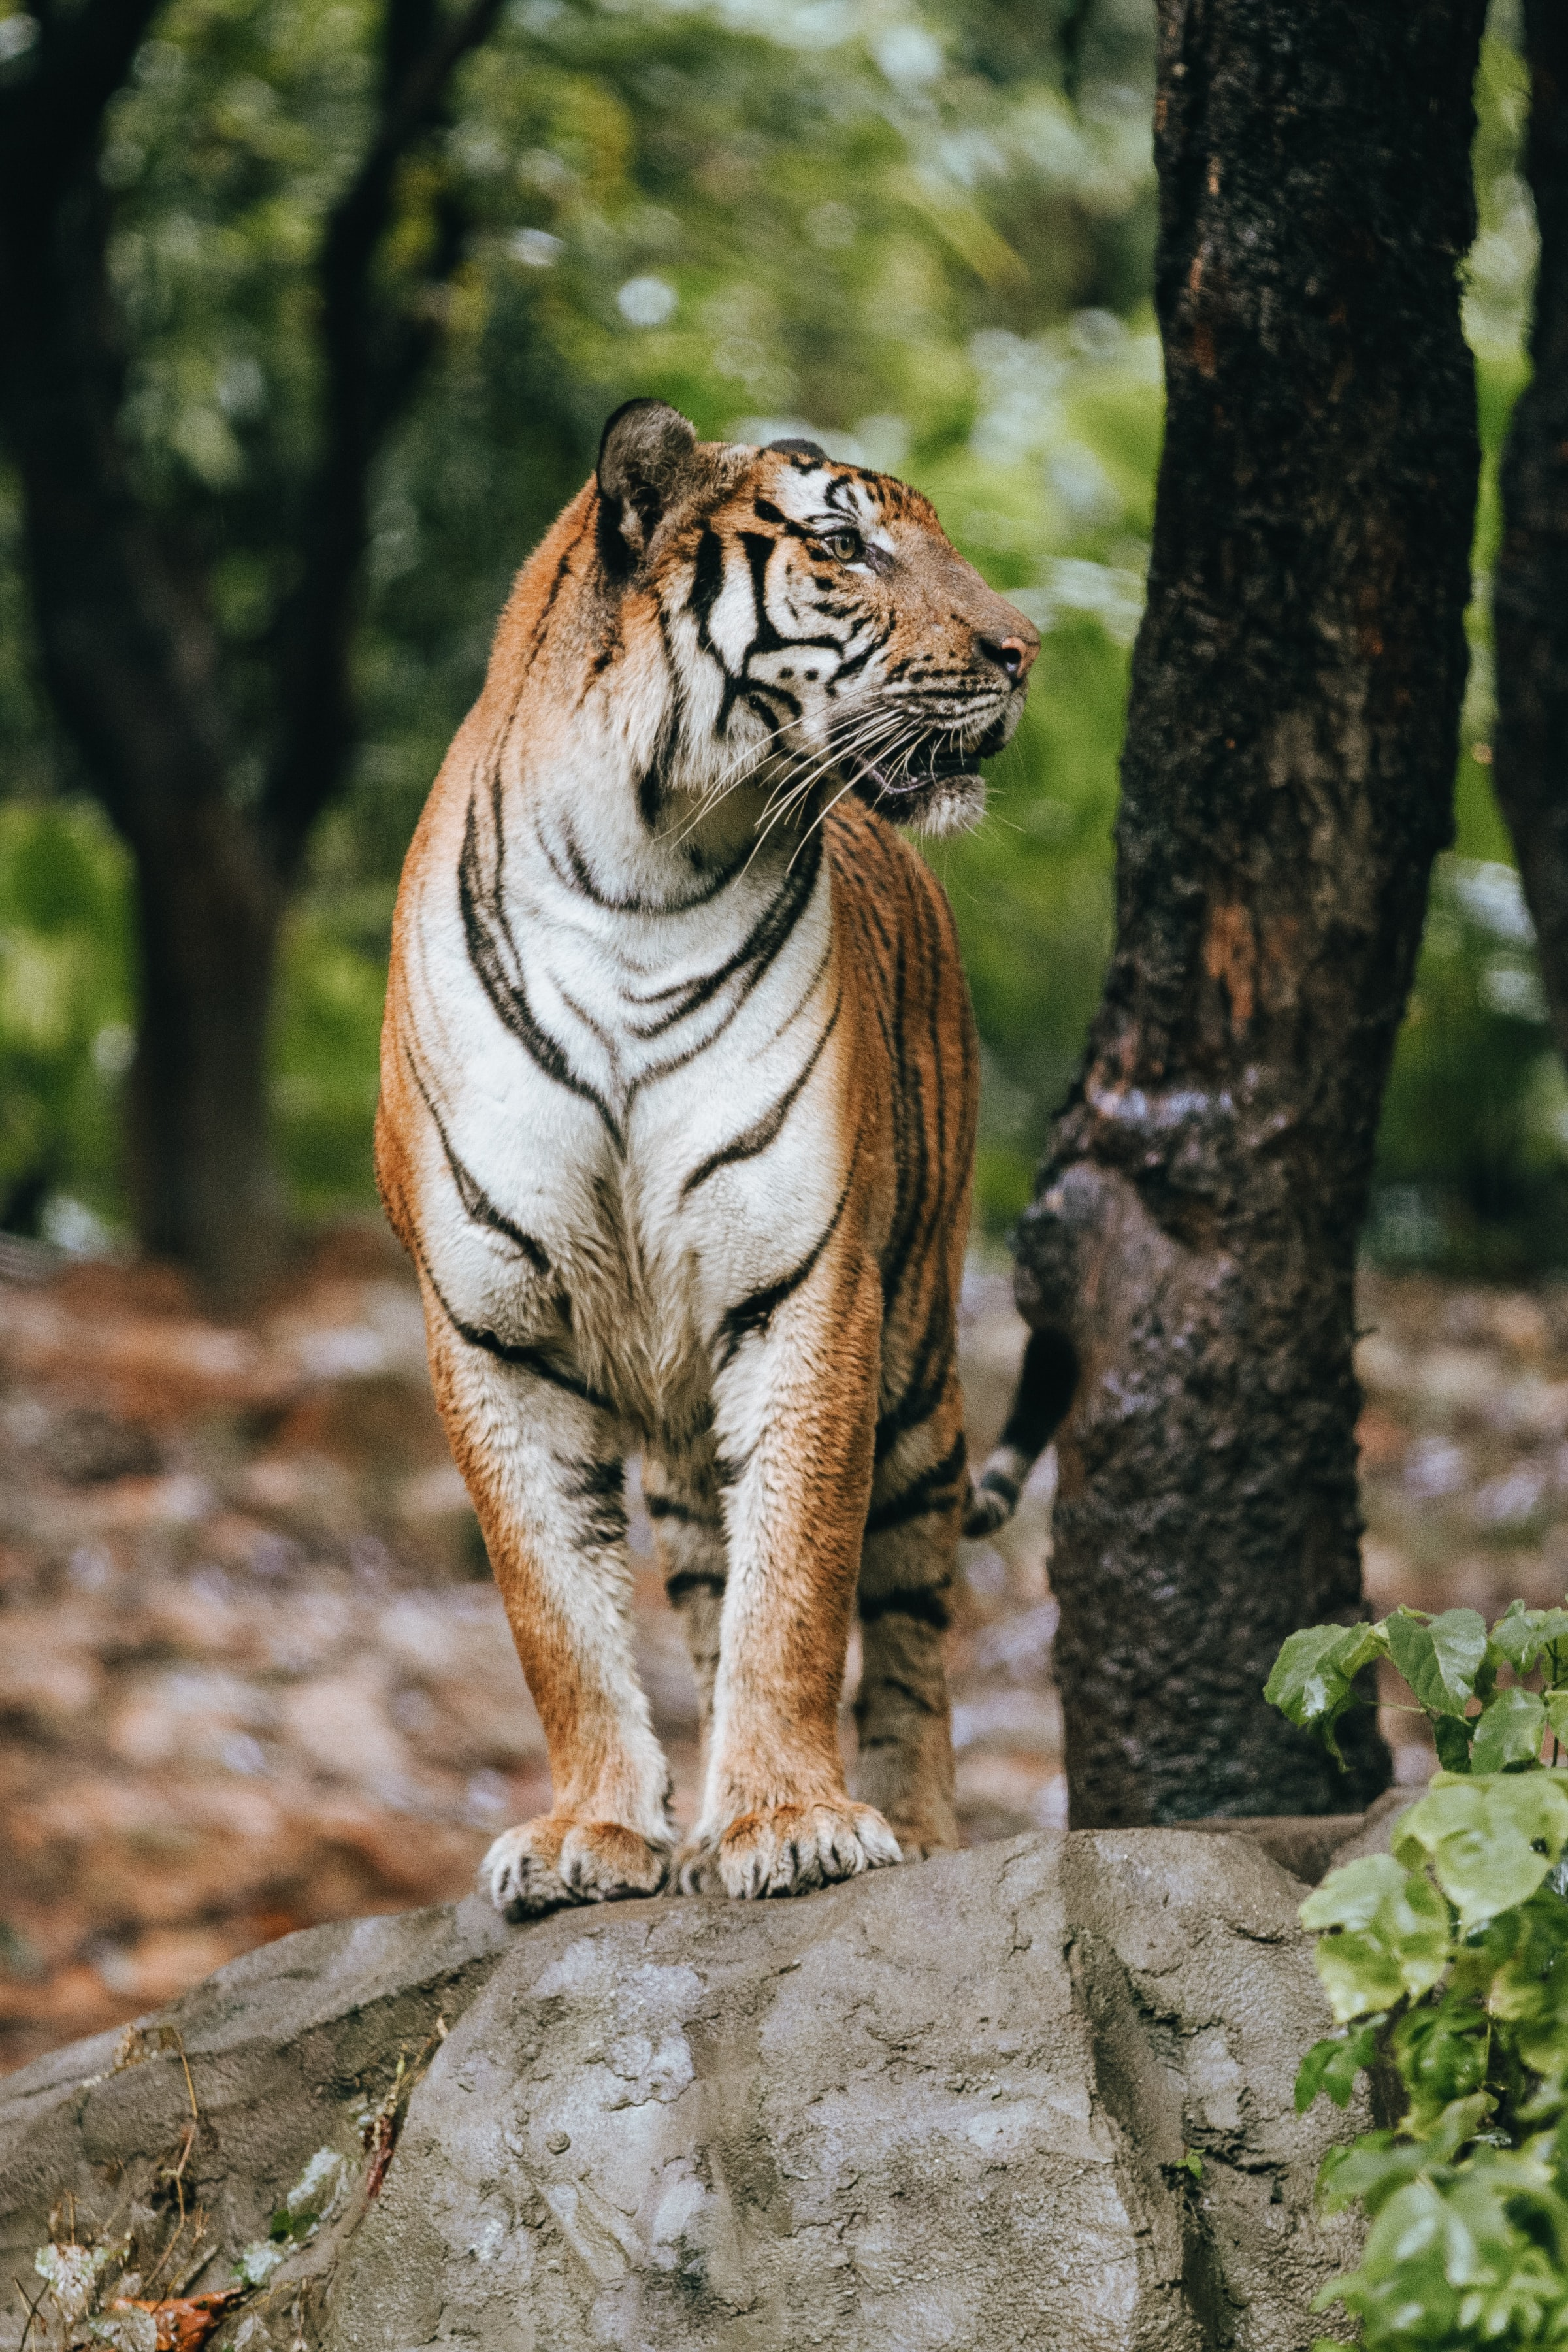 74578 download wallpaper Animals, Tiger, Profile, Predator, Big Cat screensavers and pictures for free